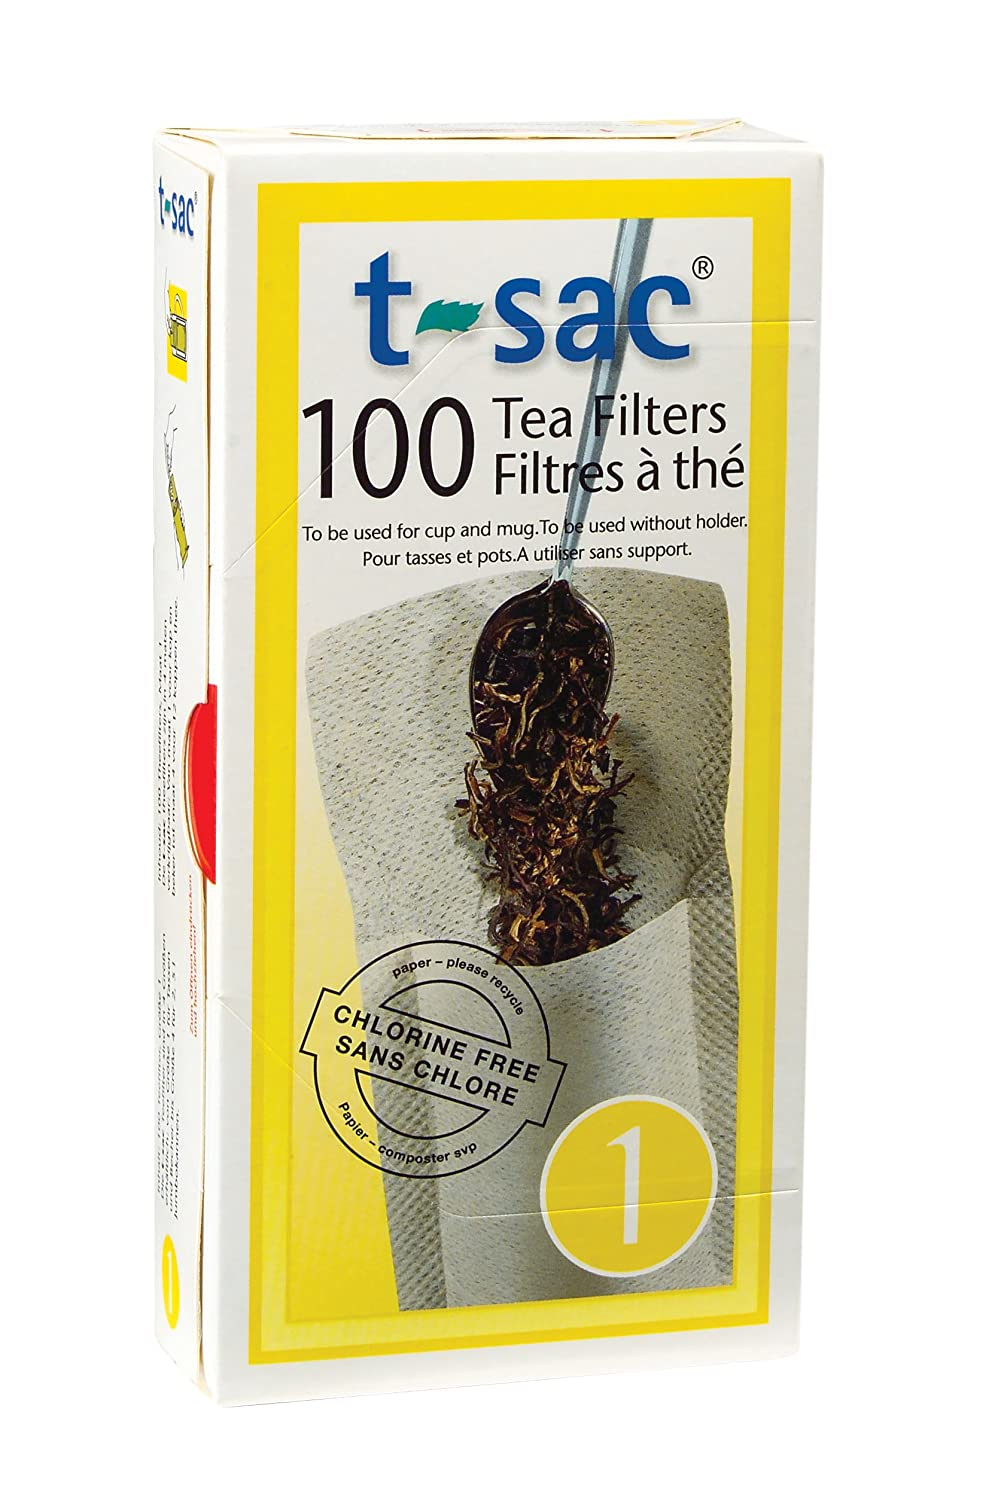 T-Sac Tea Filter Bags, Disposable Tea Infuser, Number 1-Size, 1-Cup Capacity, Set of 100 1601